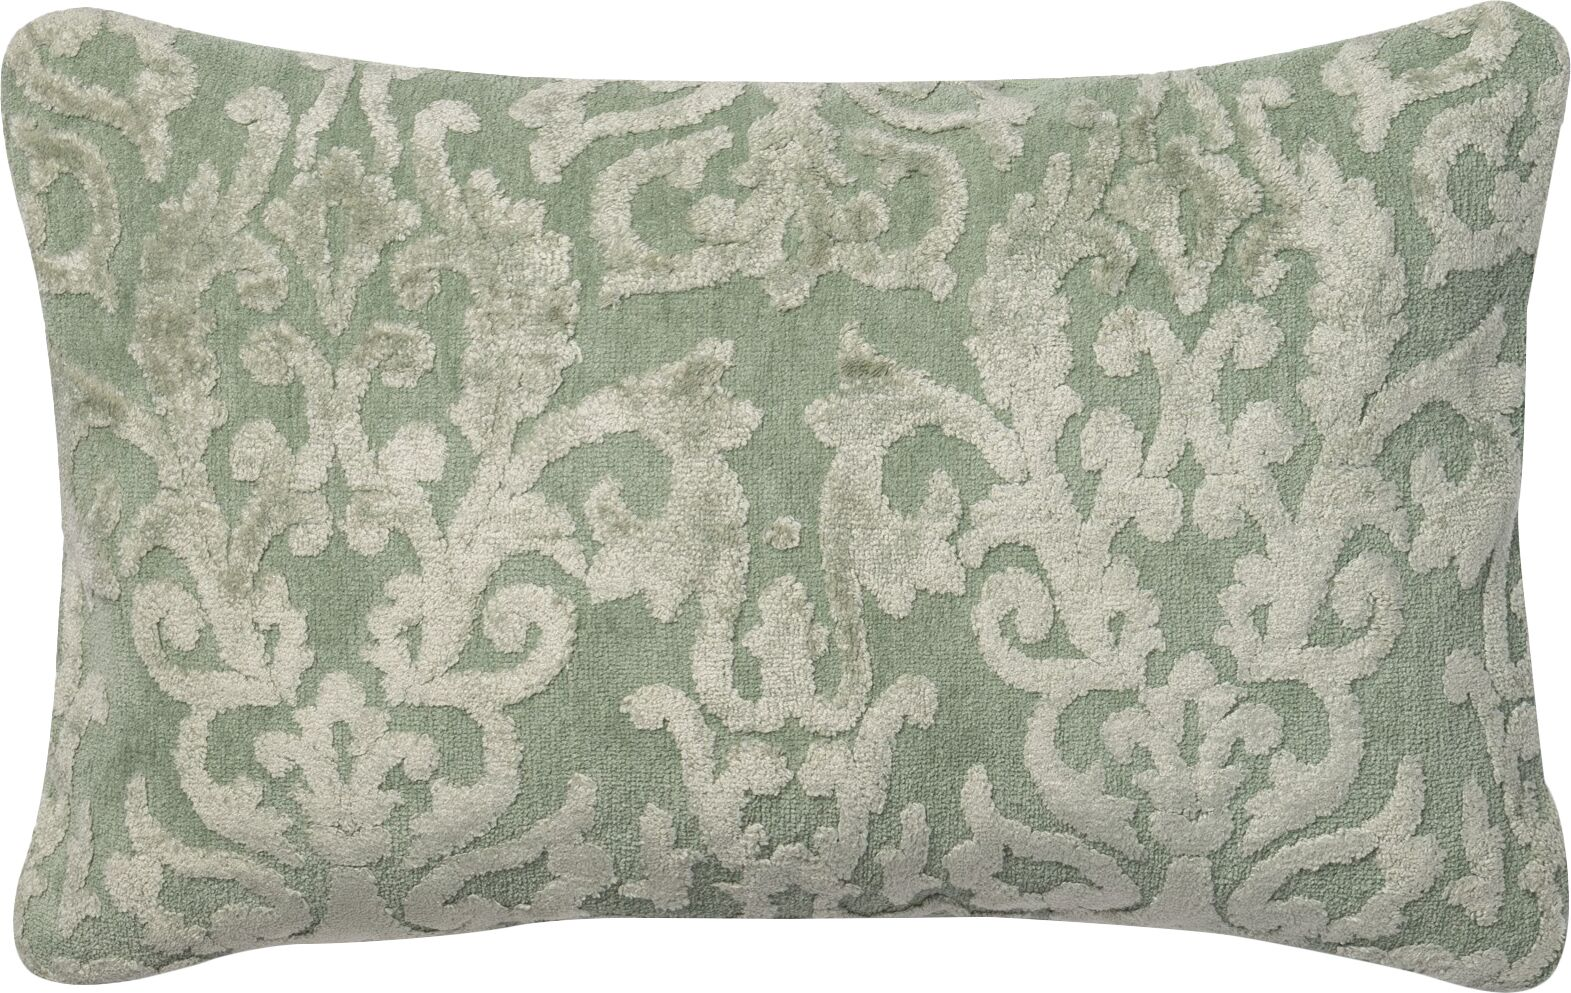 Northwest Hills Lumbar Pillow Color: Silver Sage